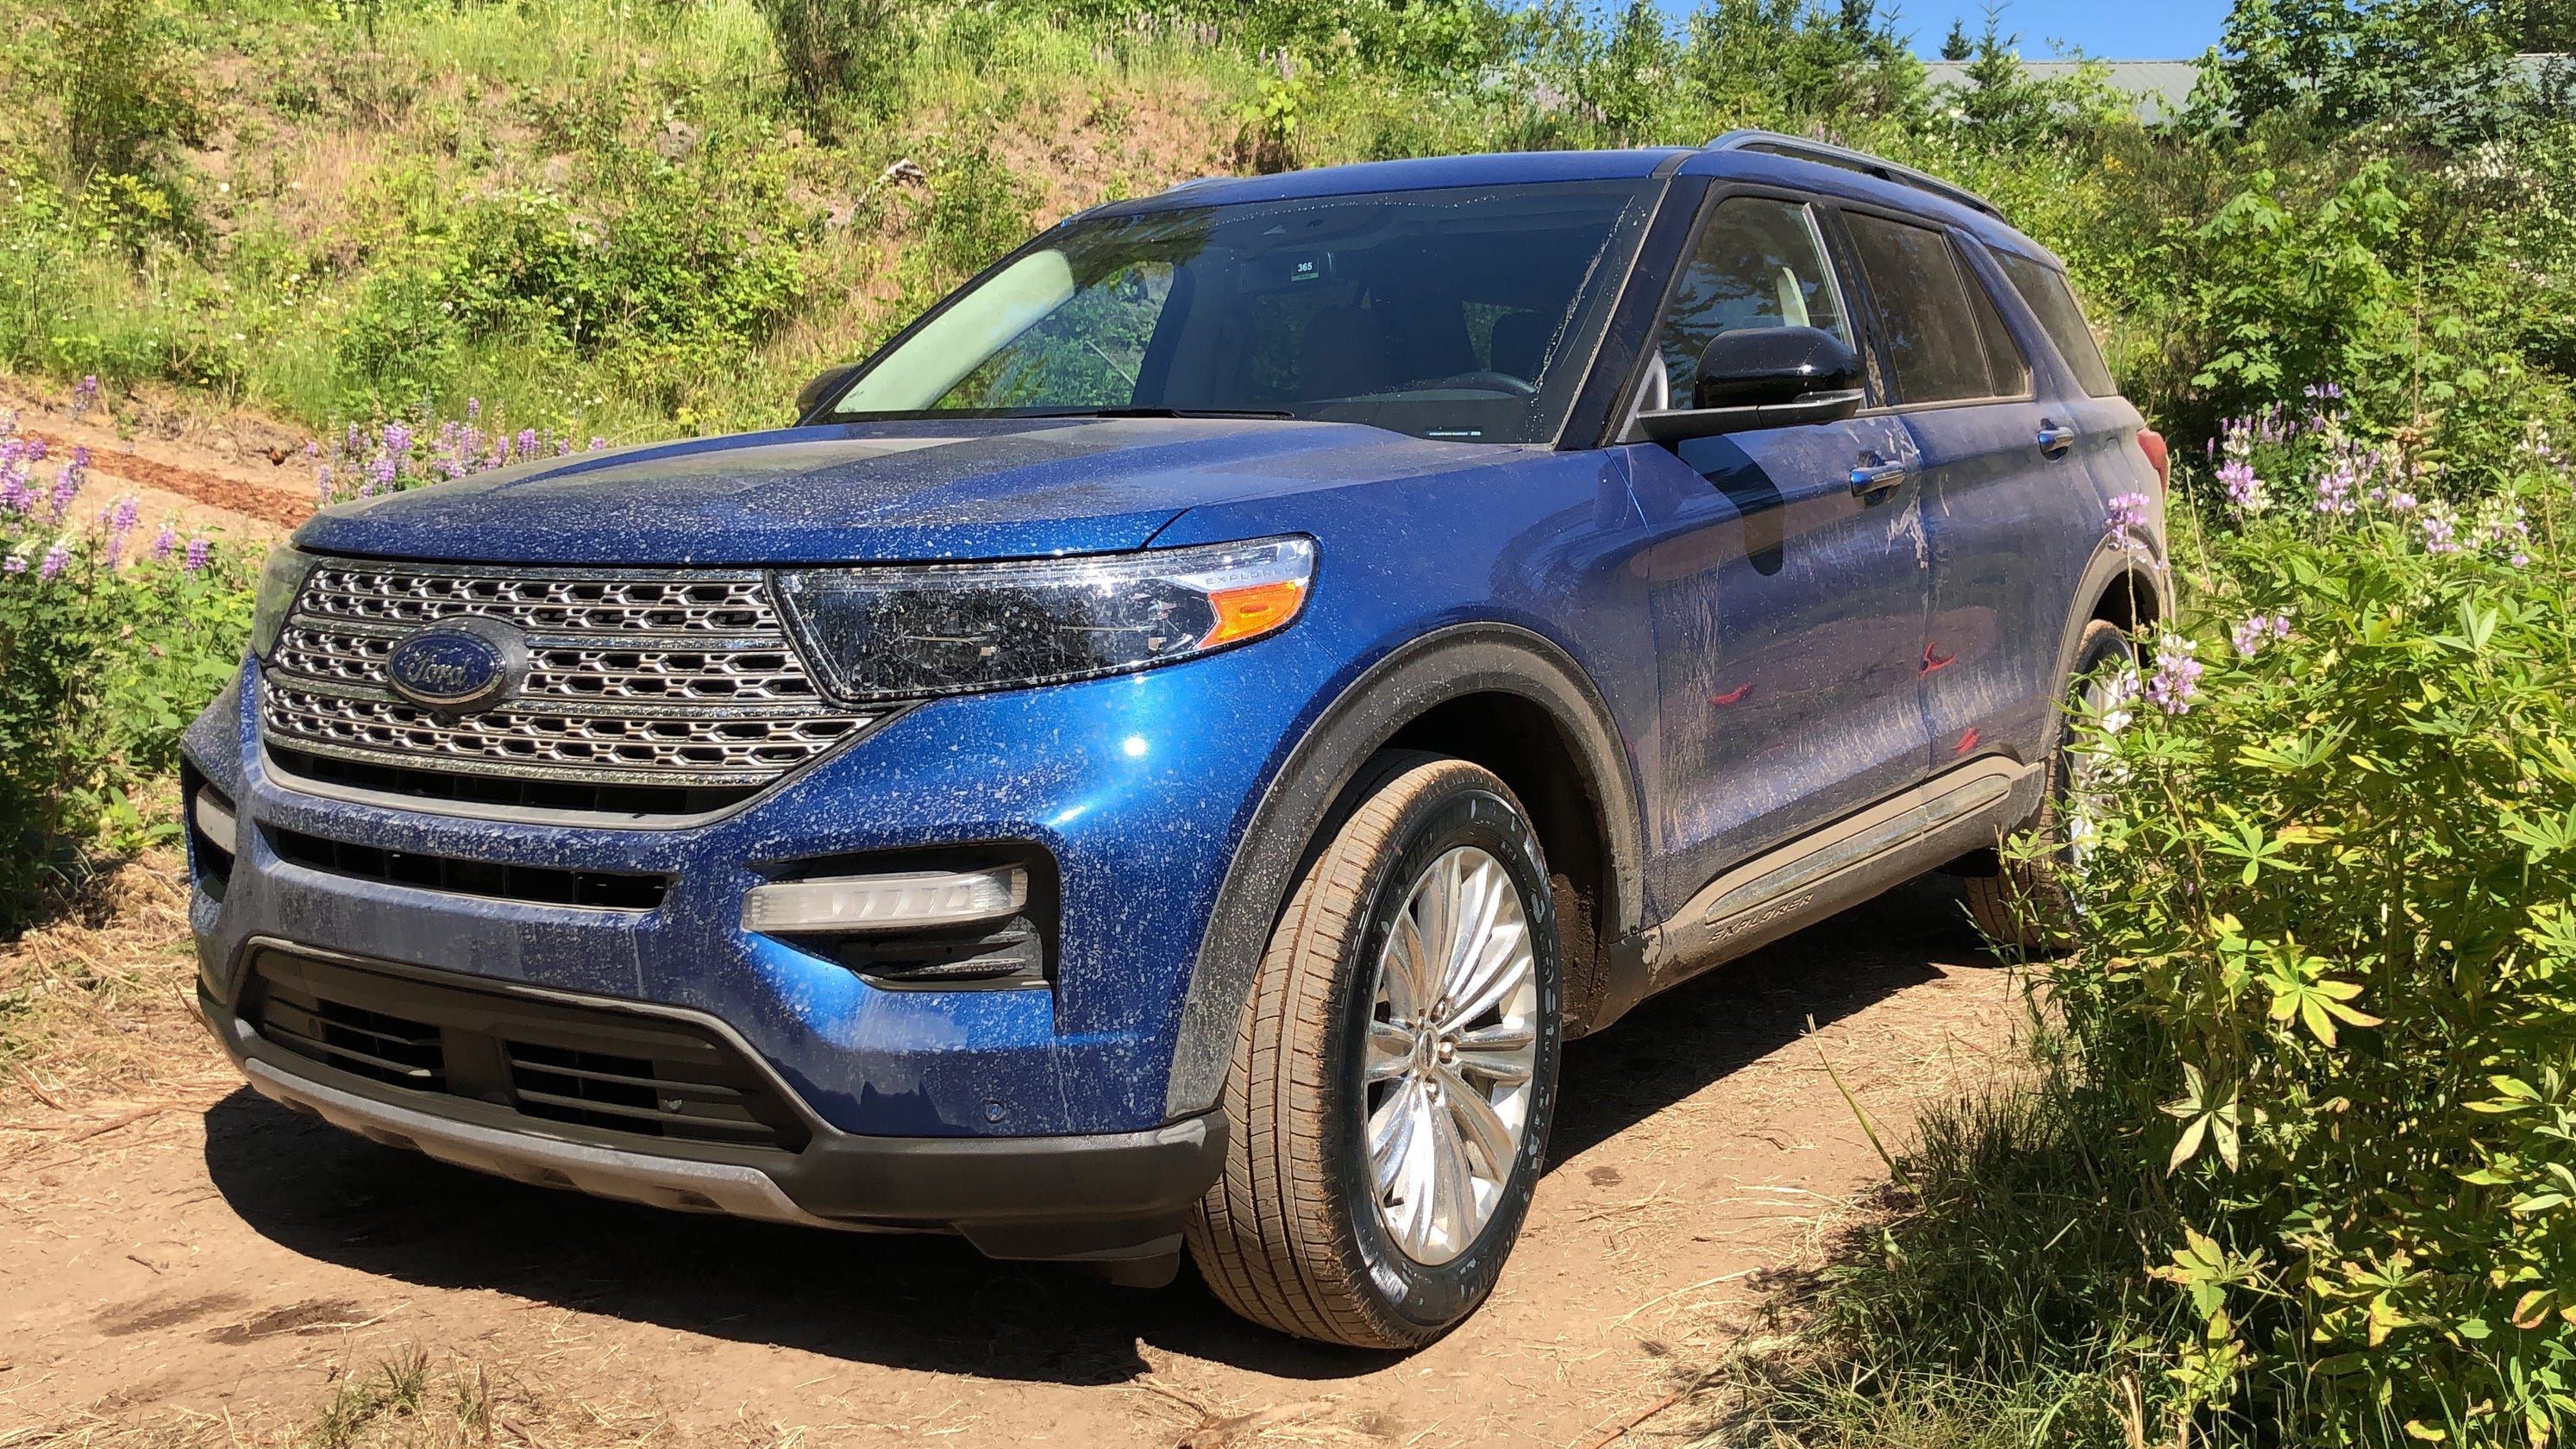 New Ford Explorer >> Ford Explorer Offers Rwd For Safer High Performance Drive